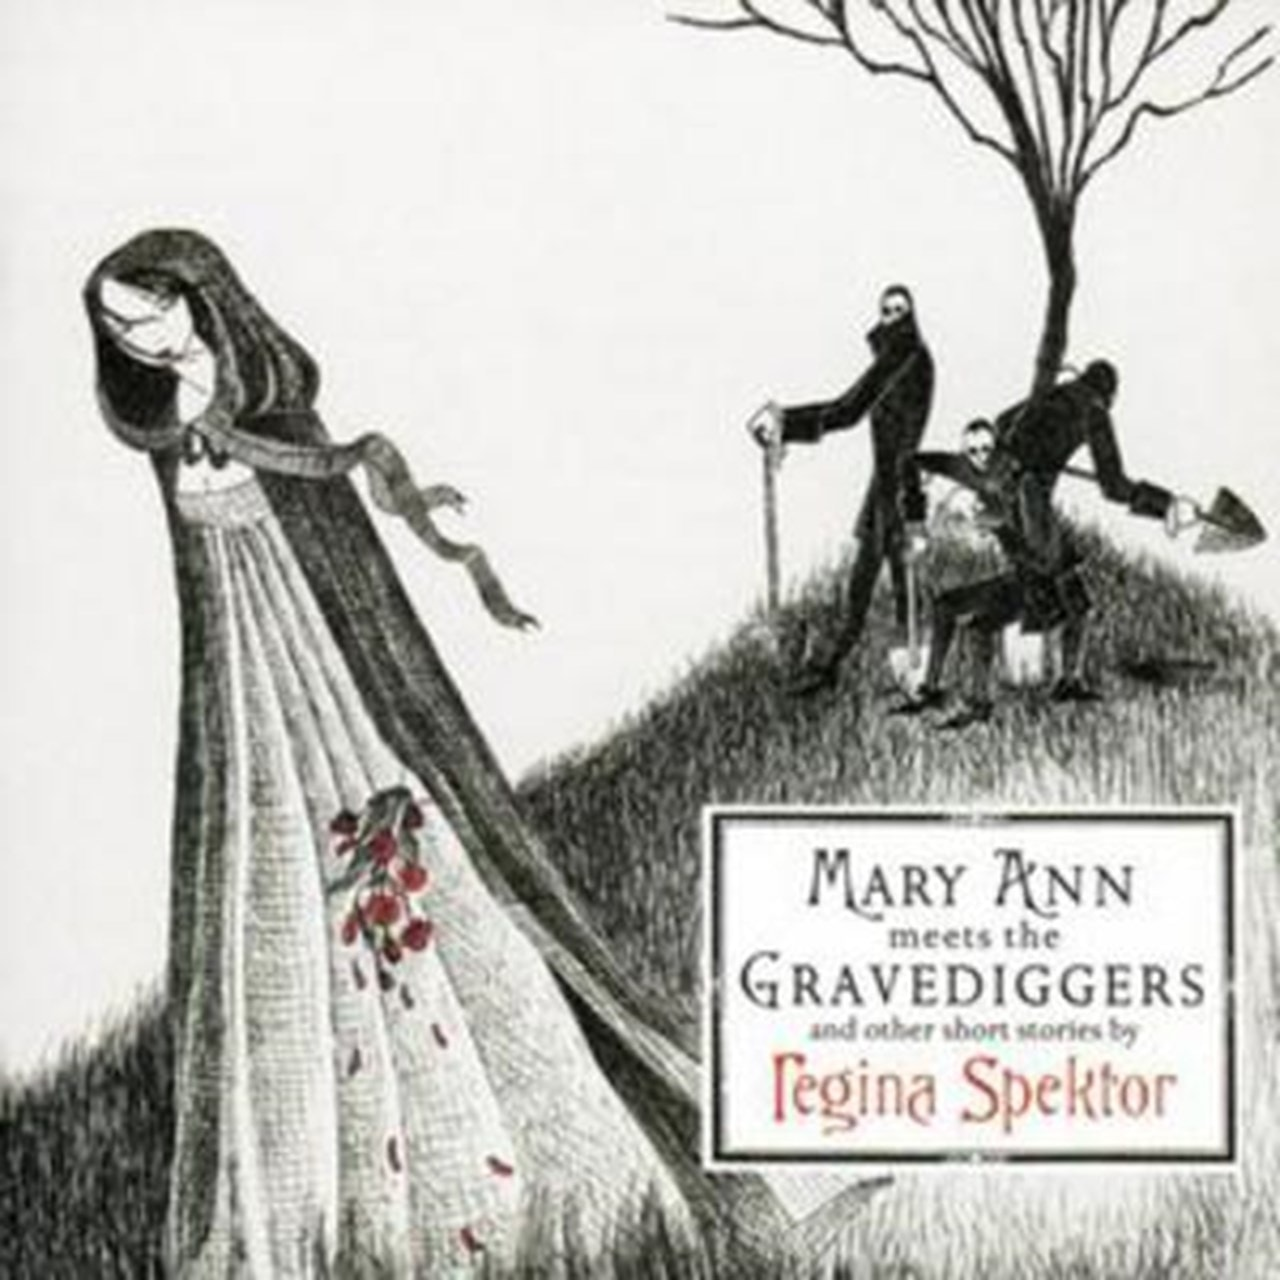 Mary Ann Meets the Gravediggers and Other Short Stories By - 1